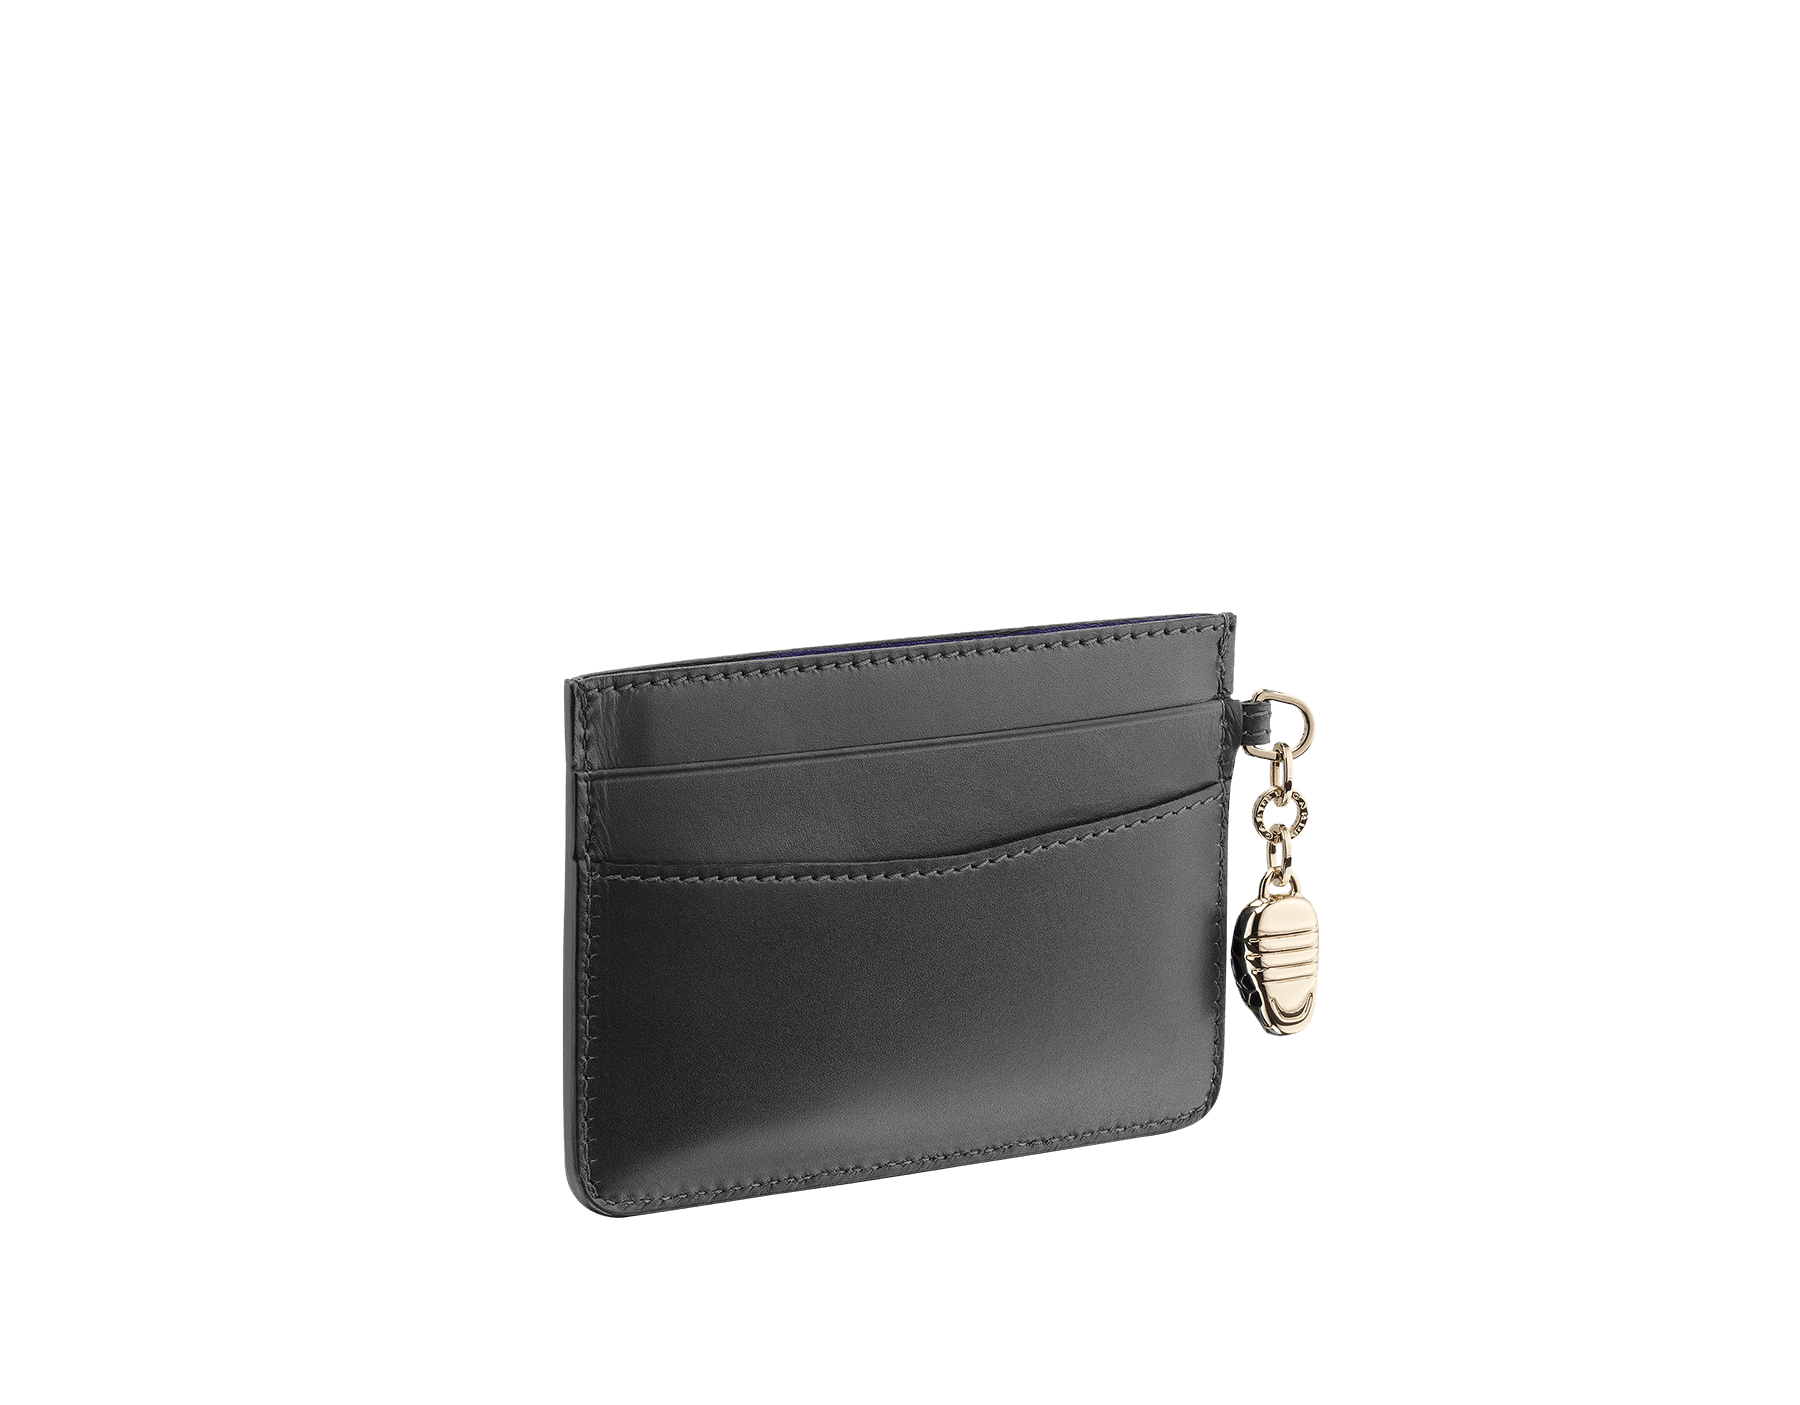 """Serpenti Forever"" card holder in Lavender Amethyst lilac calf leather. Iconic light gold-plated brass snakehead charm, finished with black and white agate enamel, and emerald green enamel eyes. SEA-CC-HOLDER-CLb image 2"